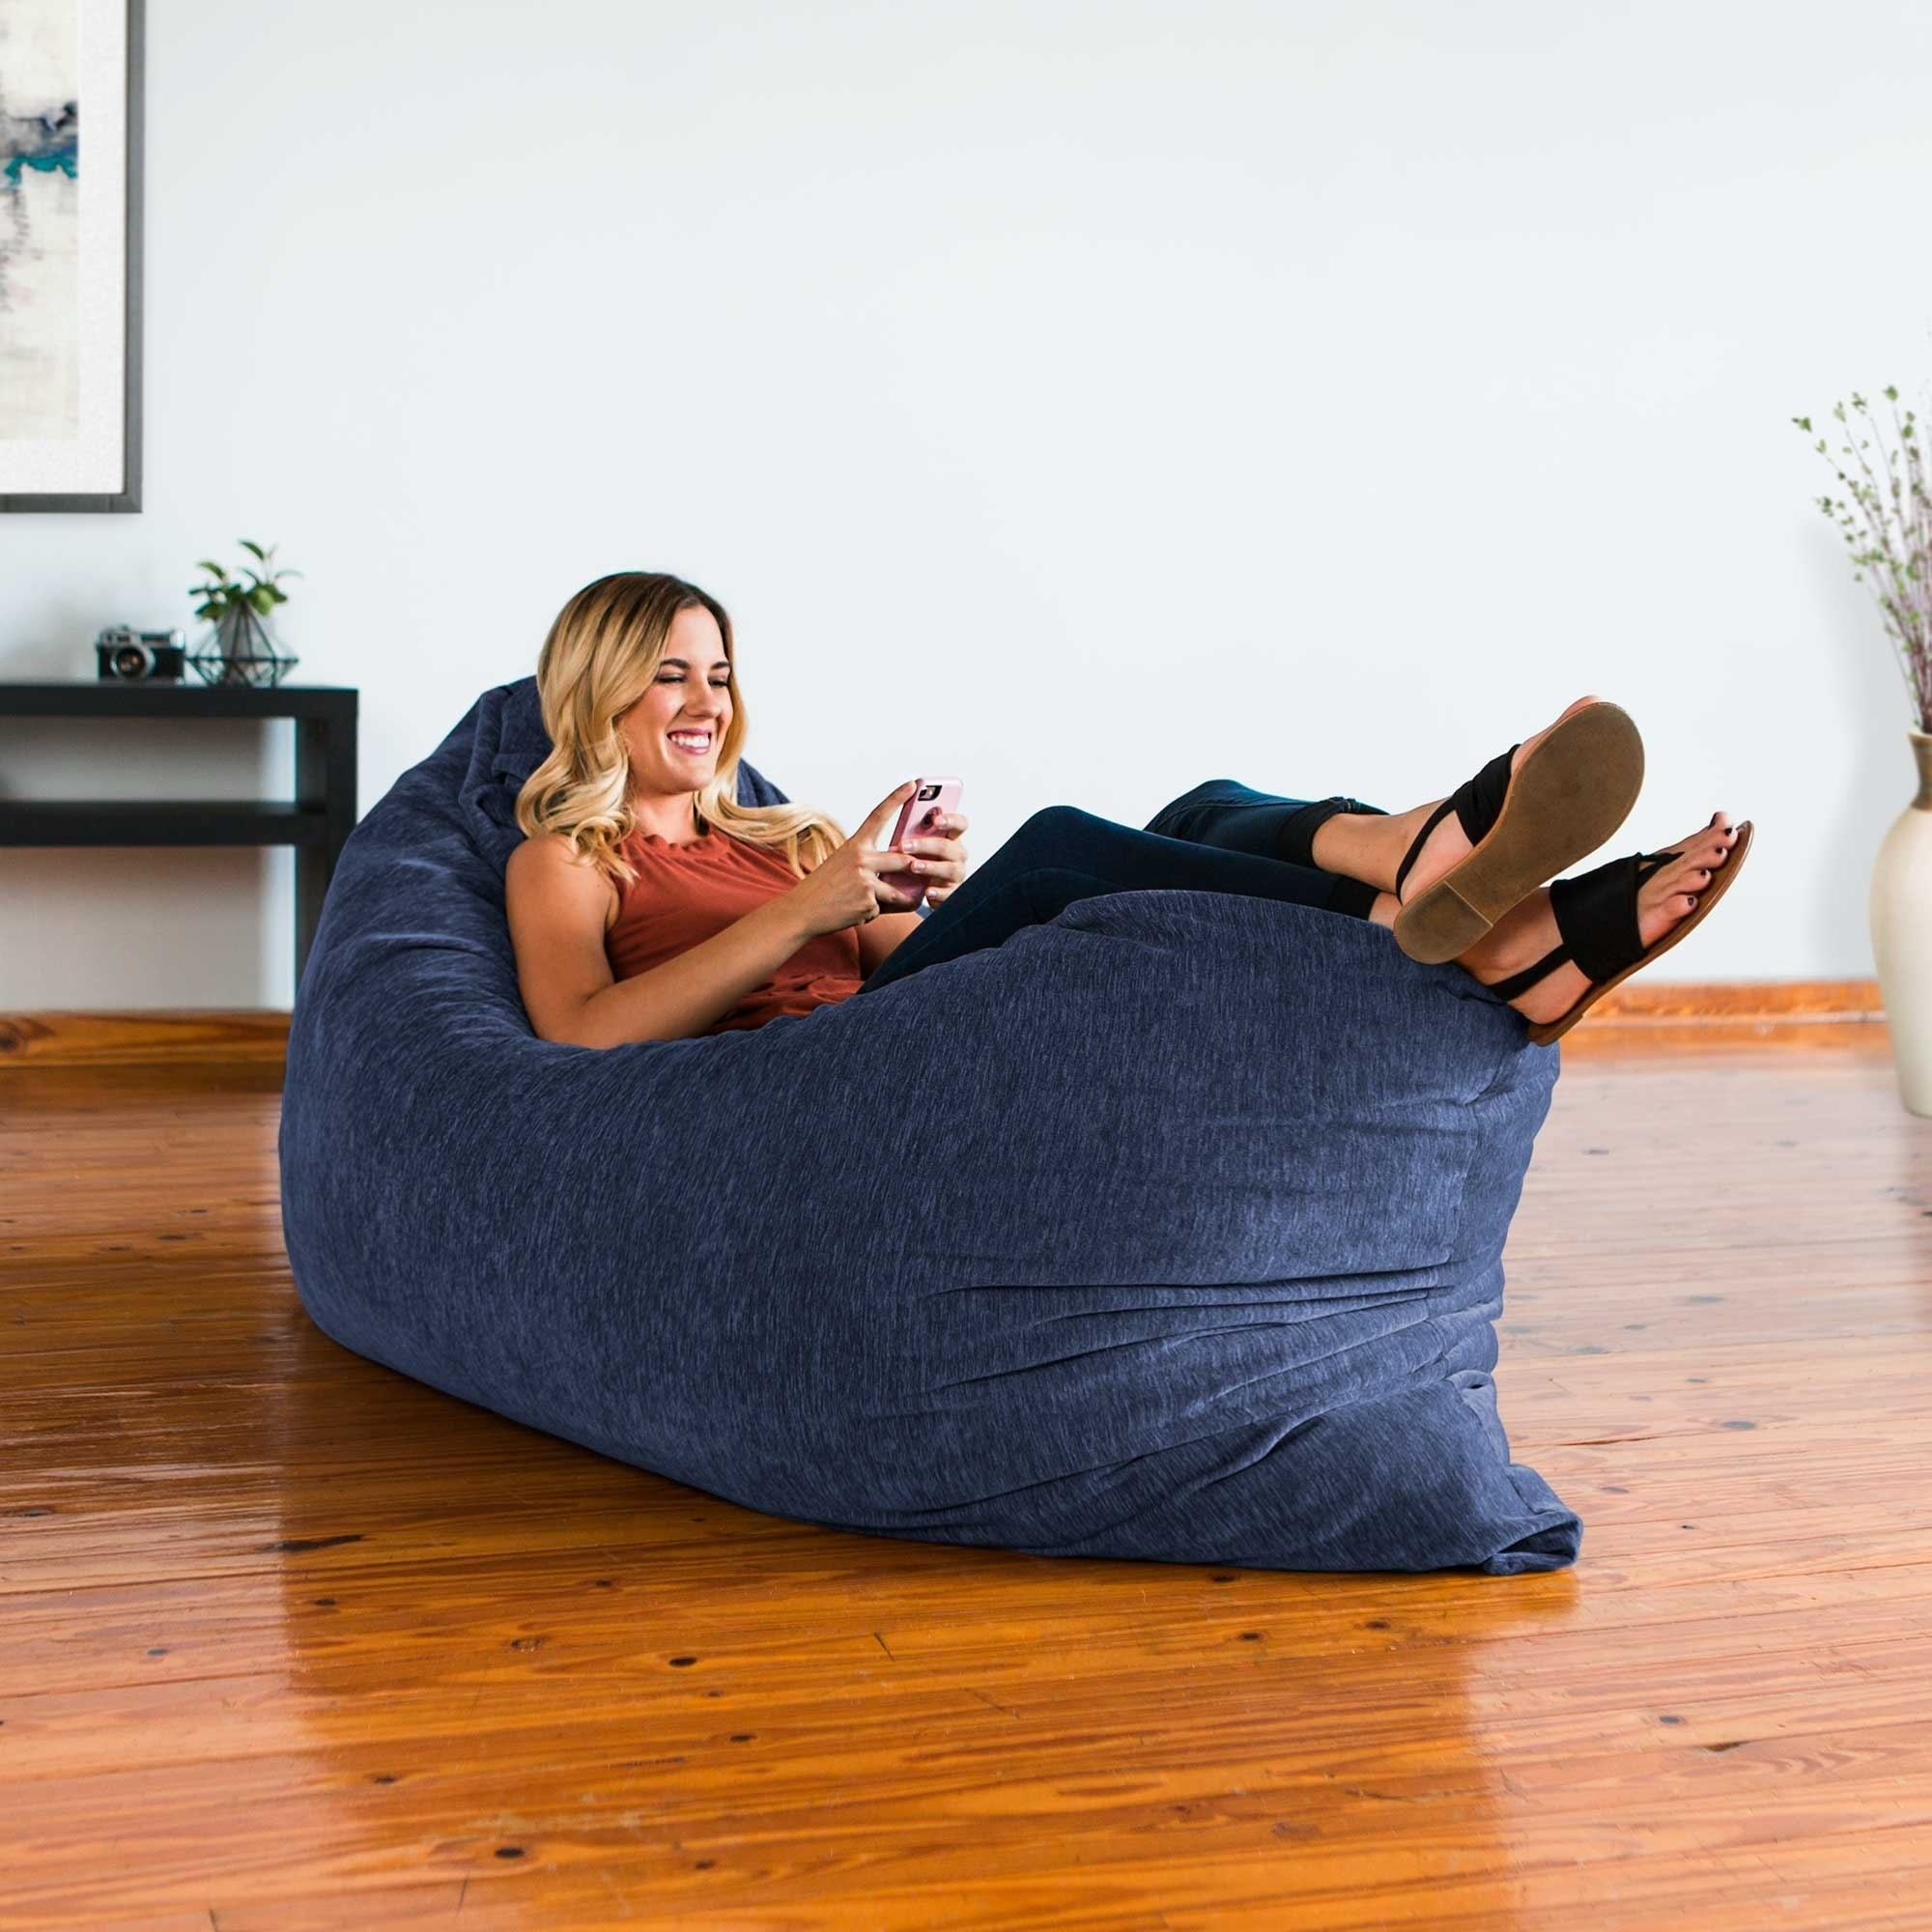 Shop Jaxx Floor Pillow Bean Bag Lounger With Chenille Cover   Free Shipping  Today   Overstock.com   17783534